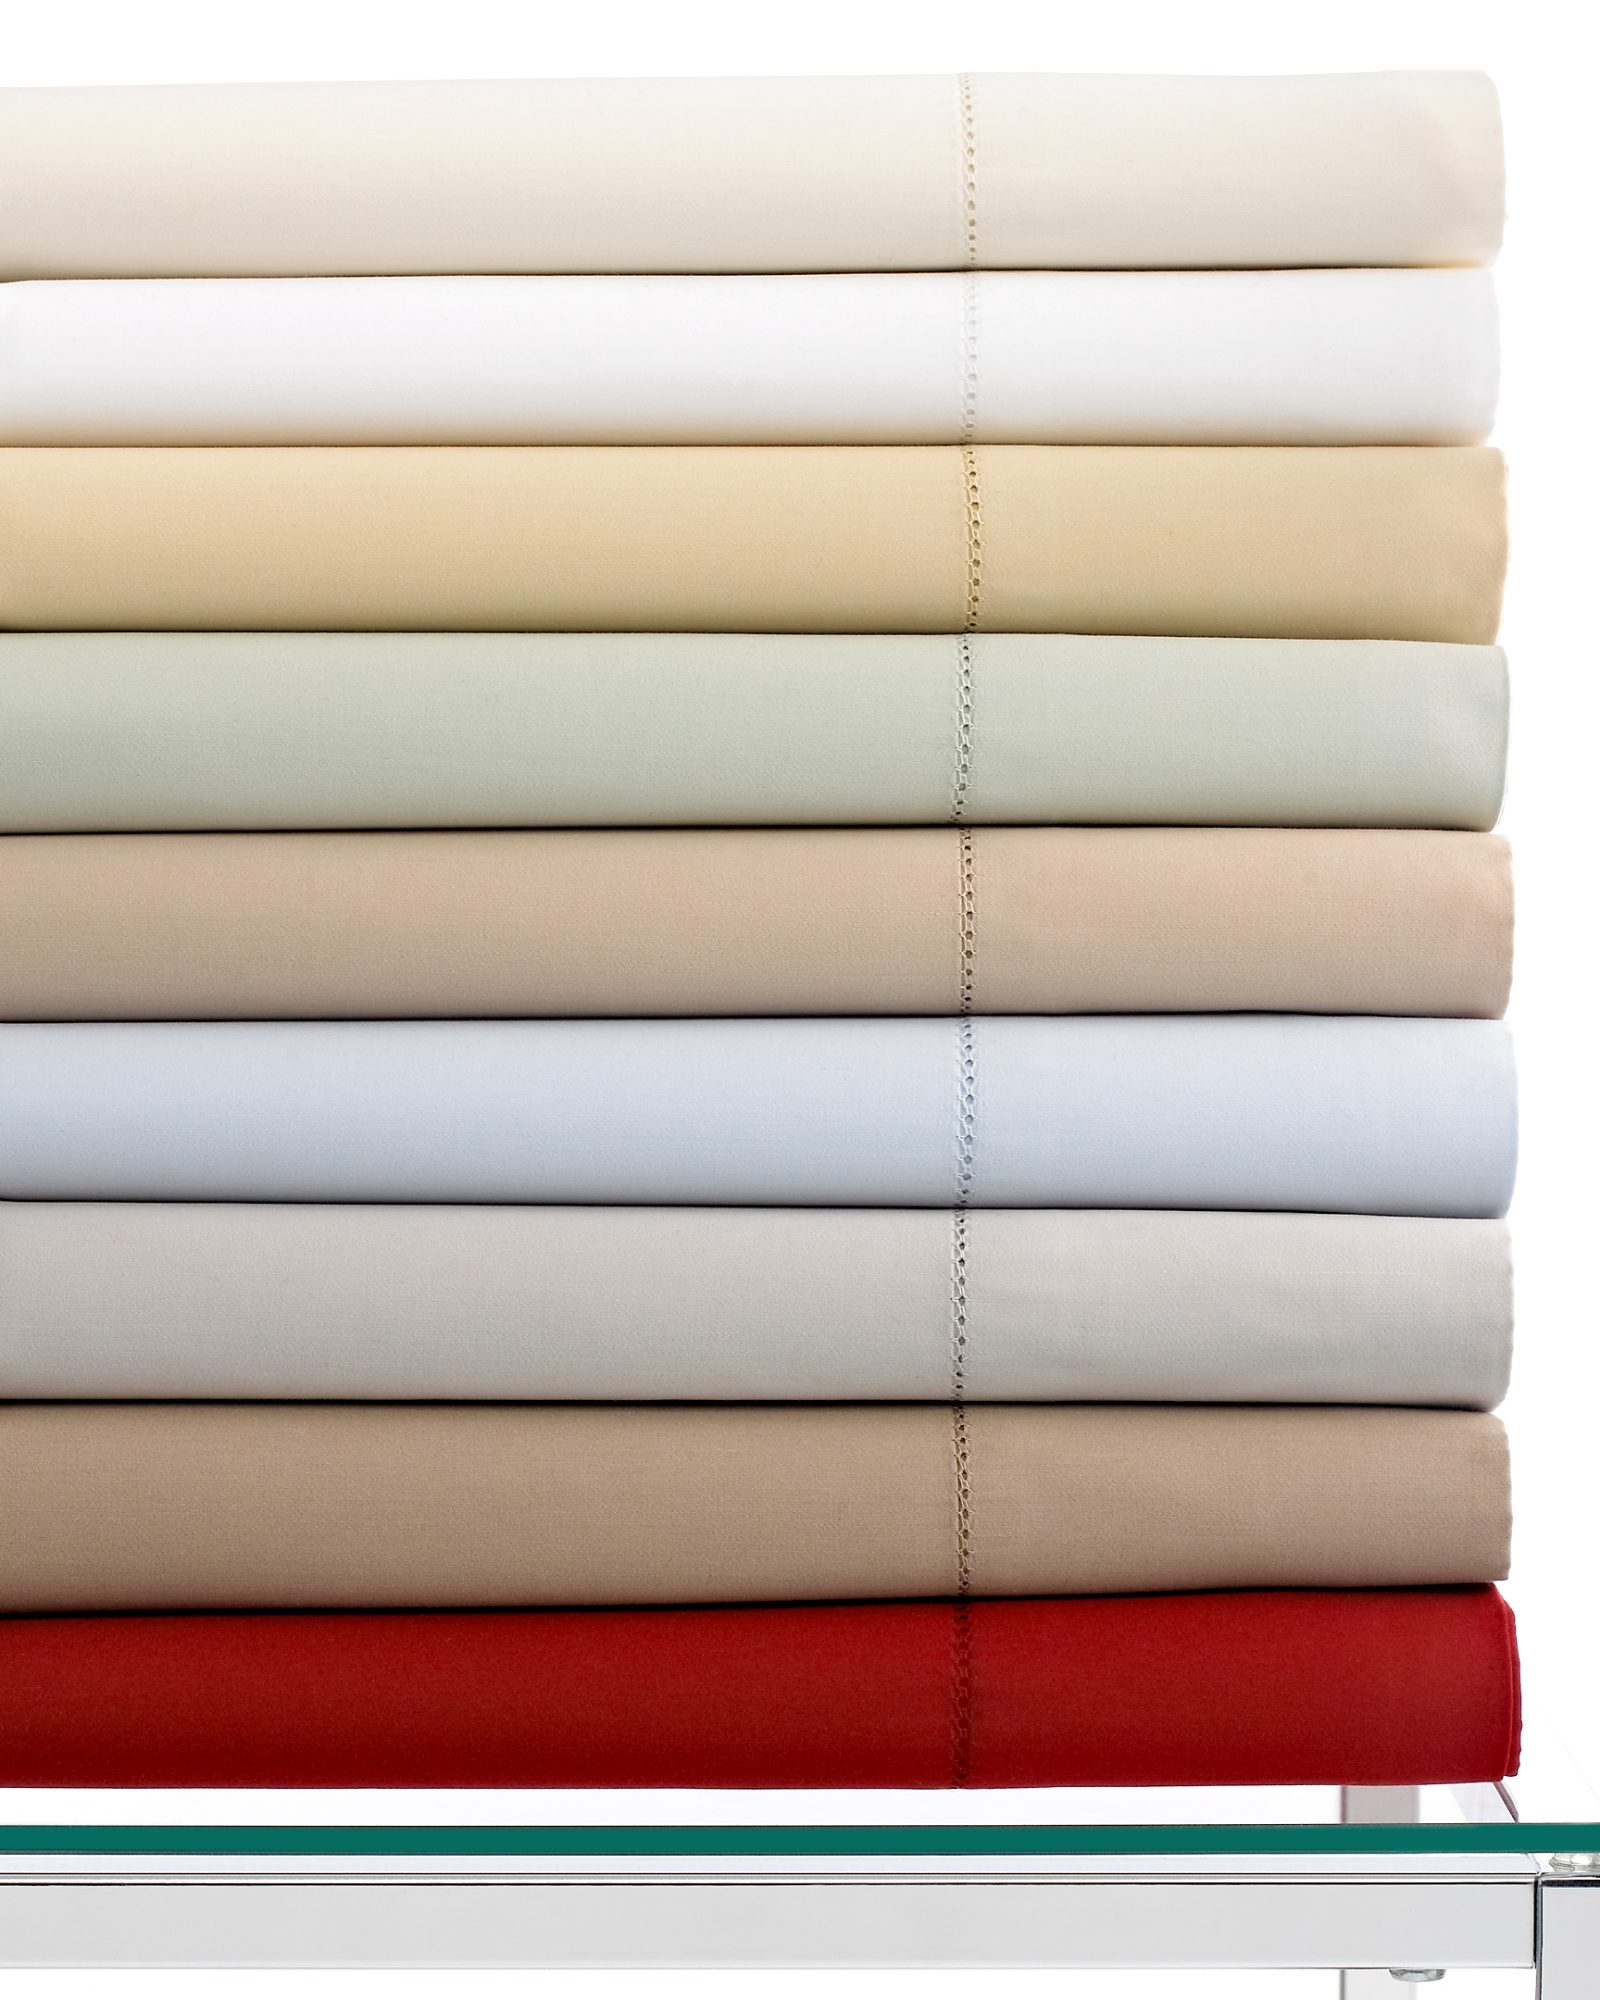 macys-registry-3-hotel-collection-600-count-sheets-0115.jpg